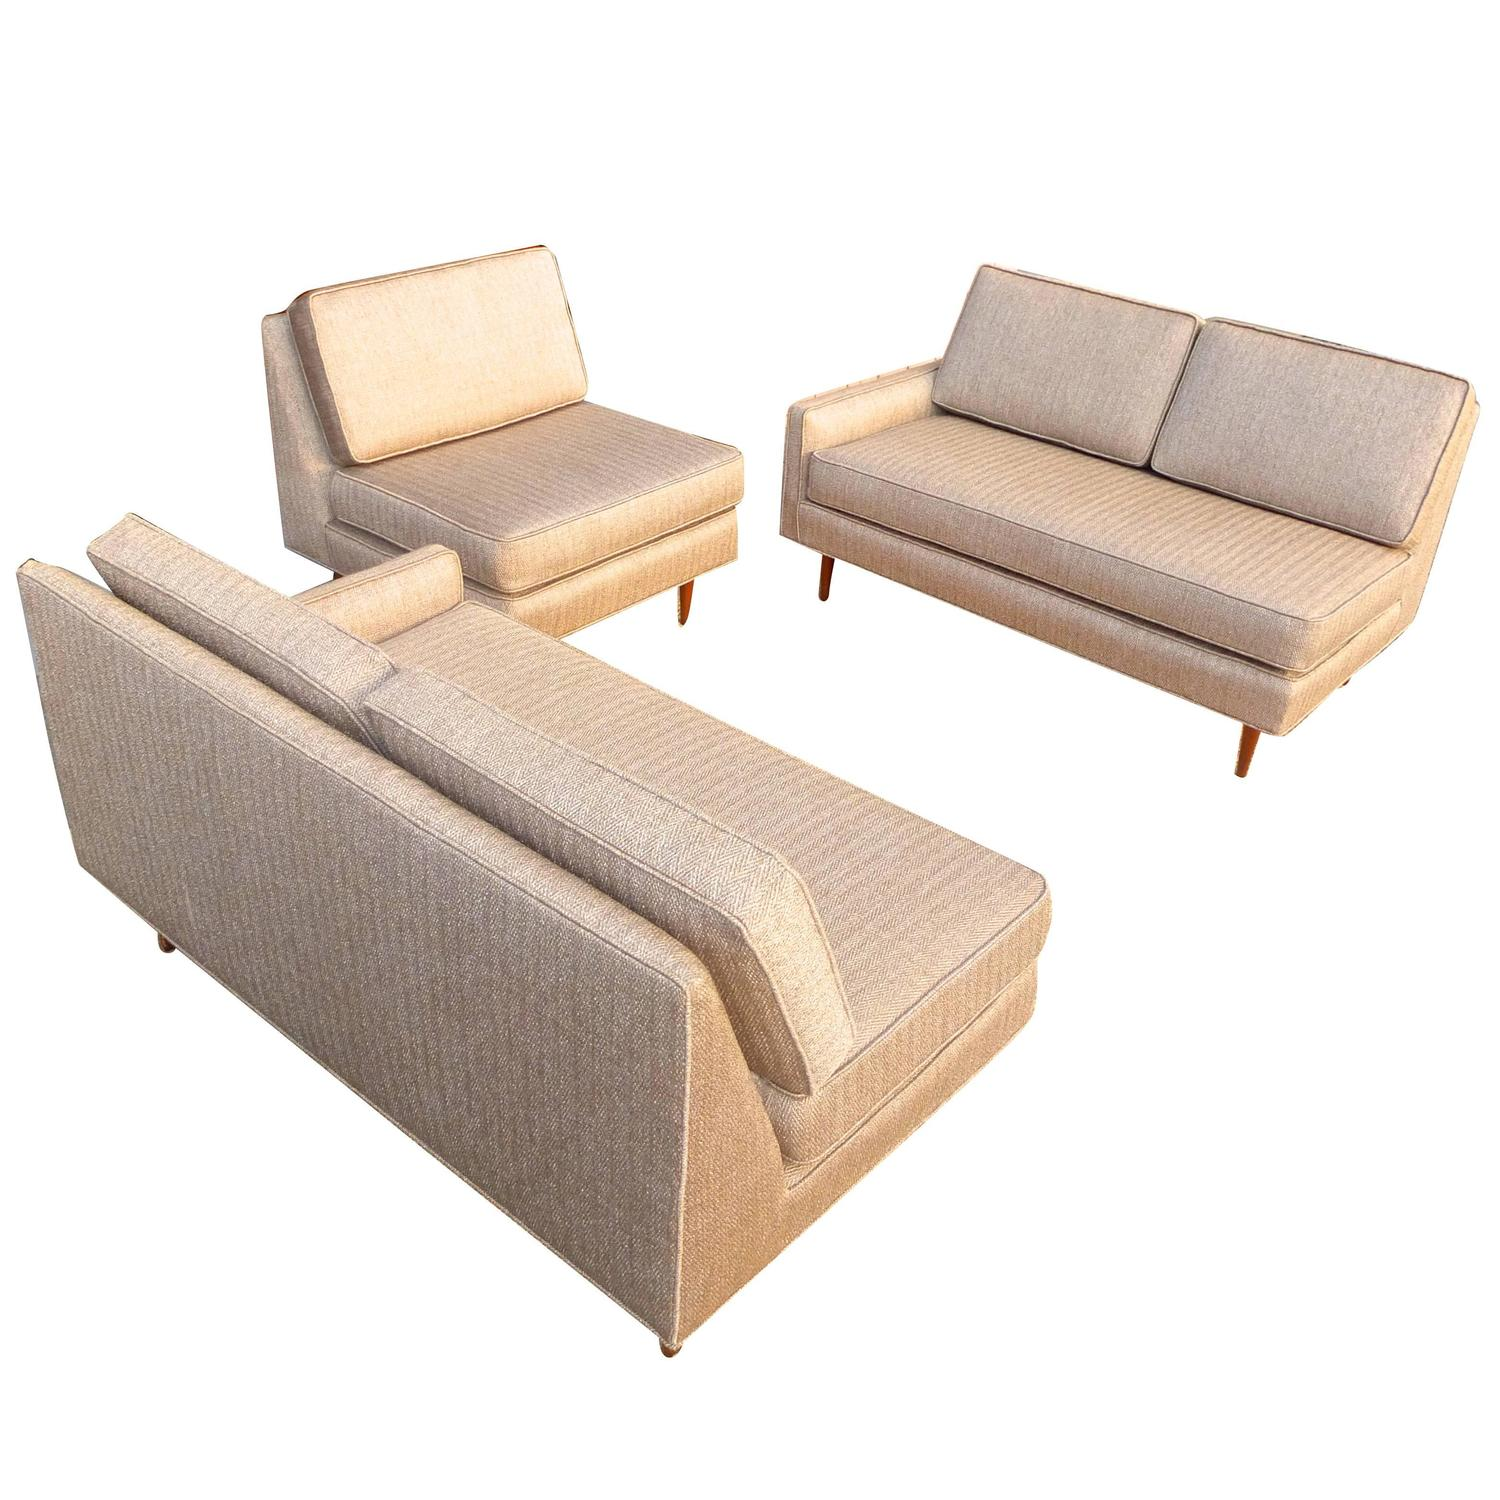 Harvey Probber Three Piece Sofa Sectional For Sale at 1stdibs